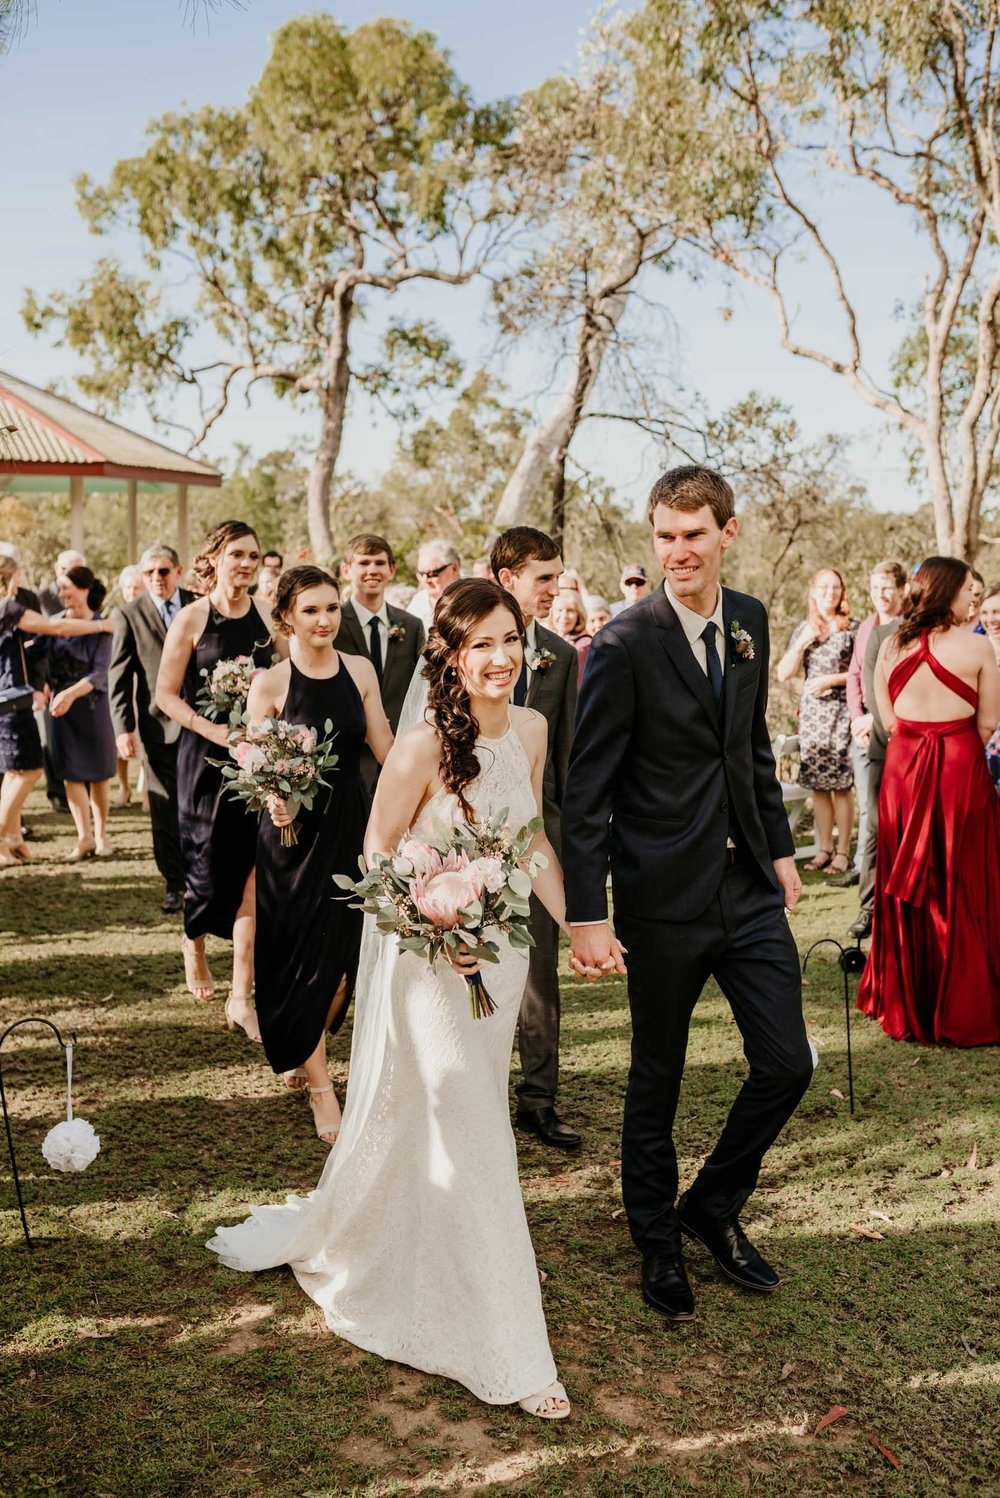 The Raw Photographer - Cairns Wedding Photographer - Atherton Tablelands Venue - Mareeba Photography-36.jpg